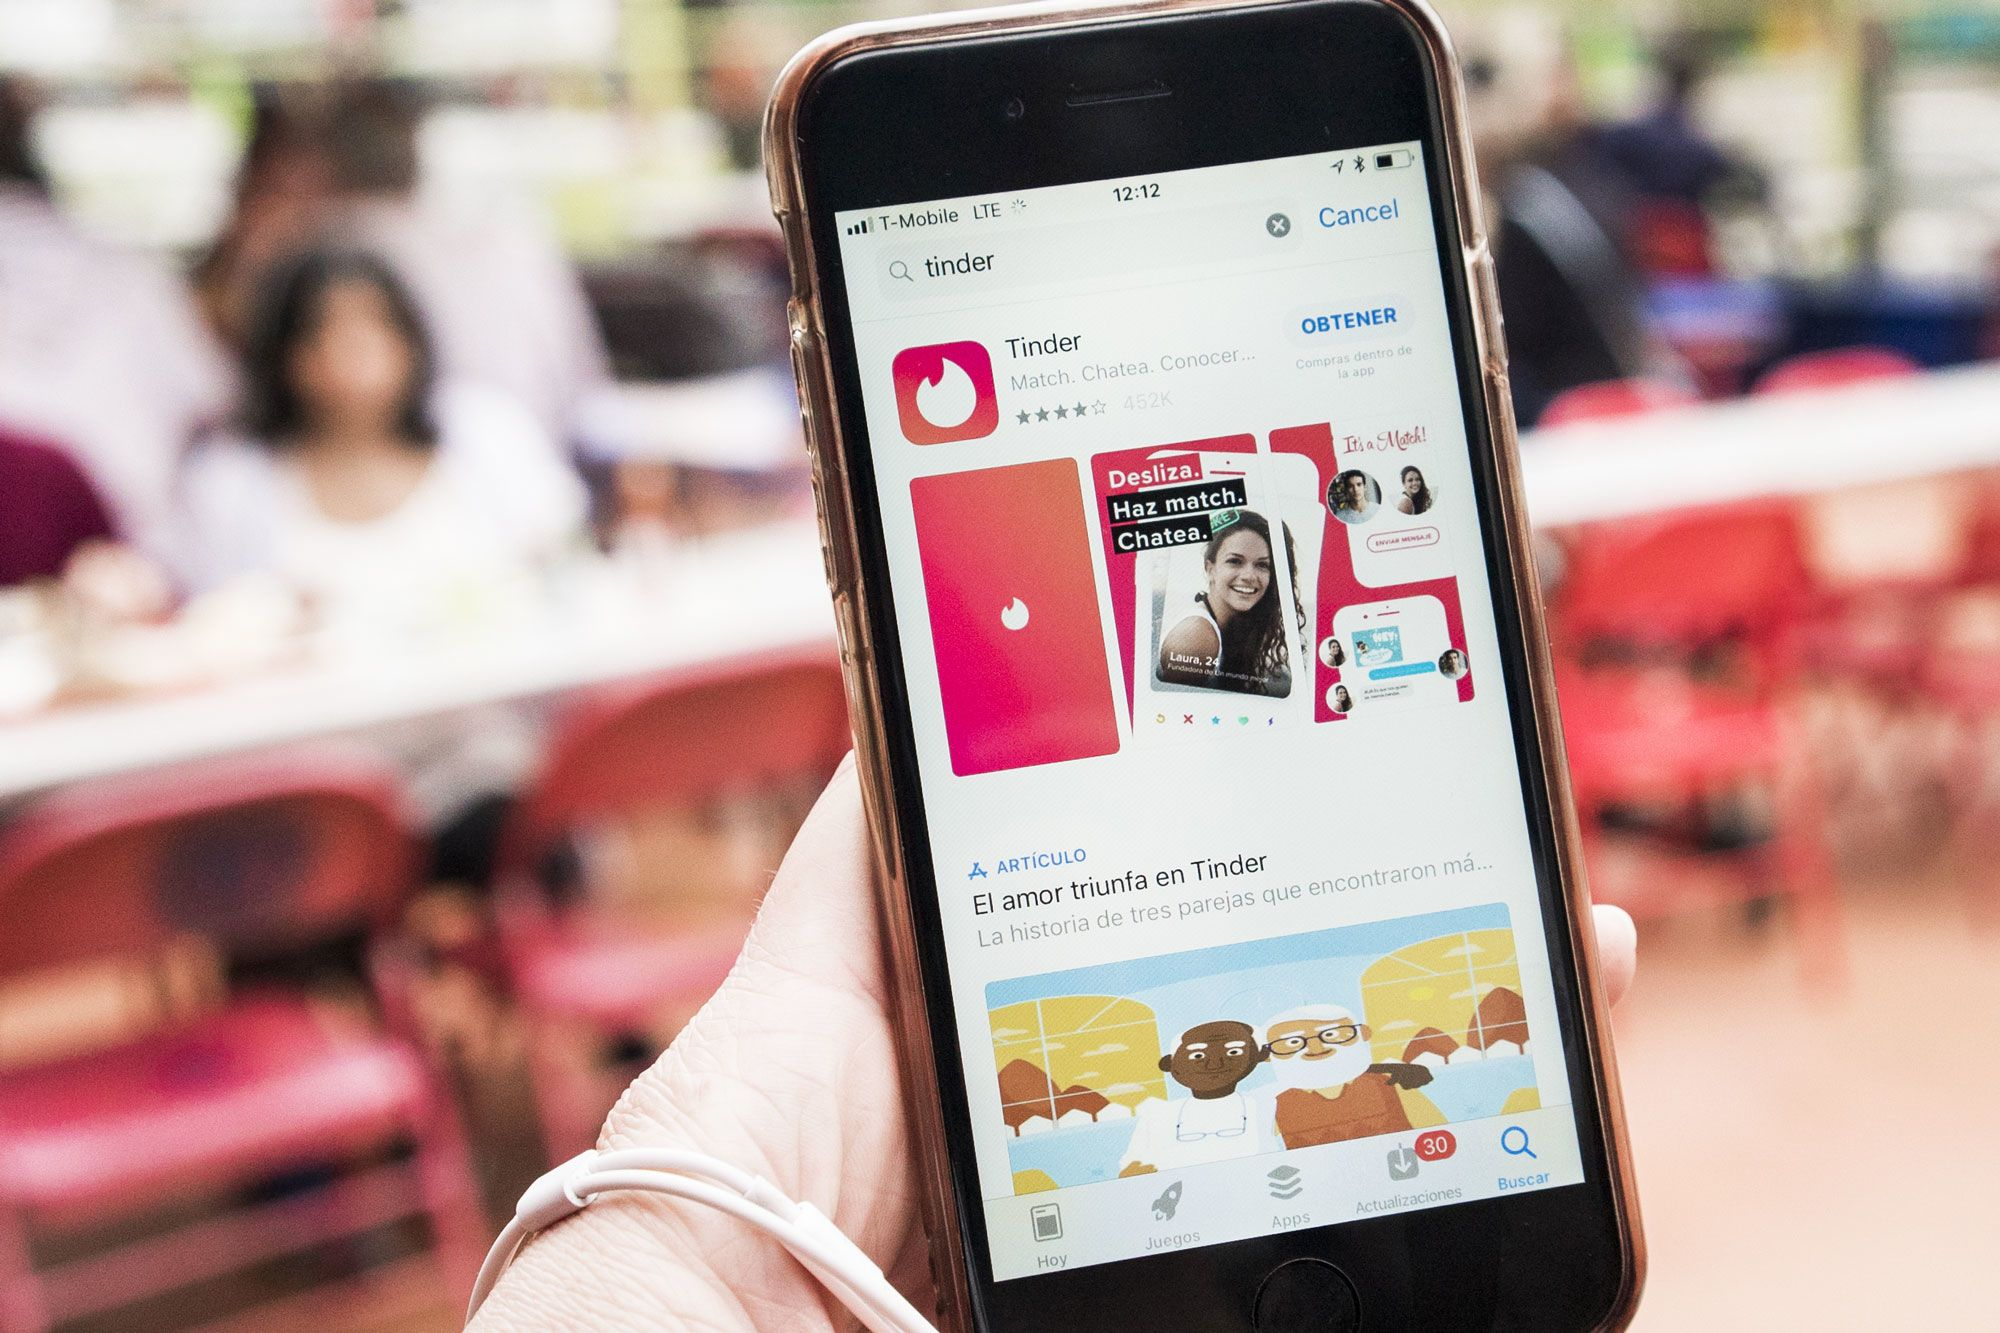 Adults using dating apps more likely to have an eating disorder: Study